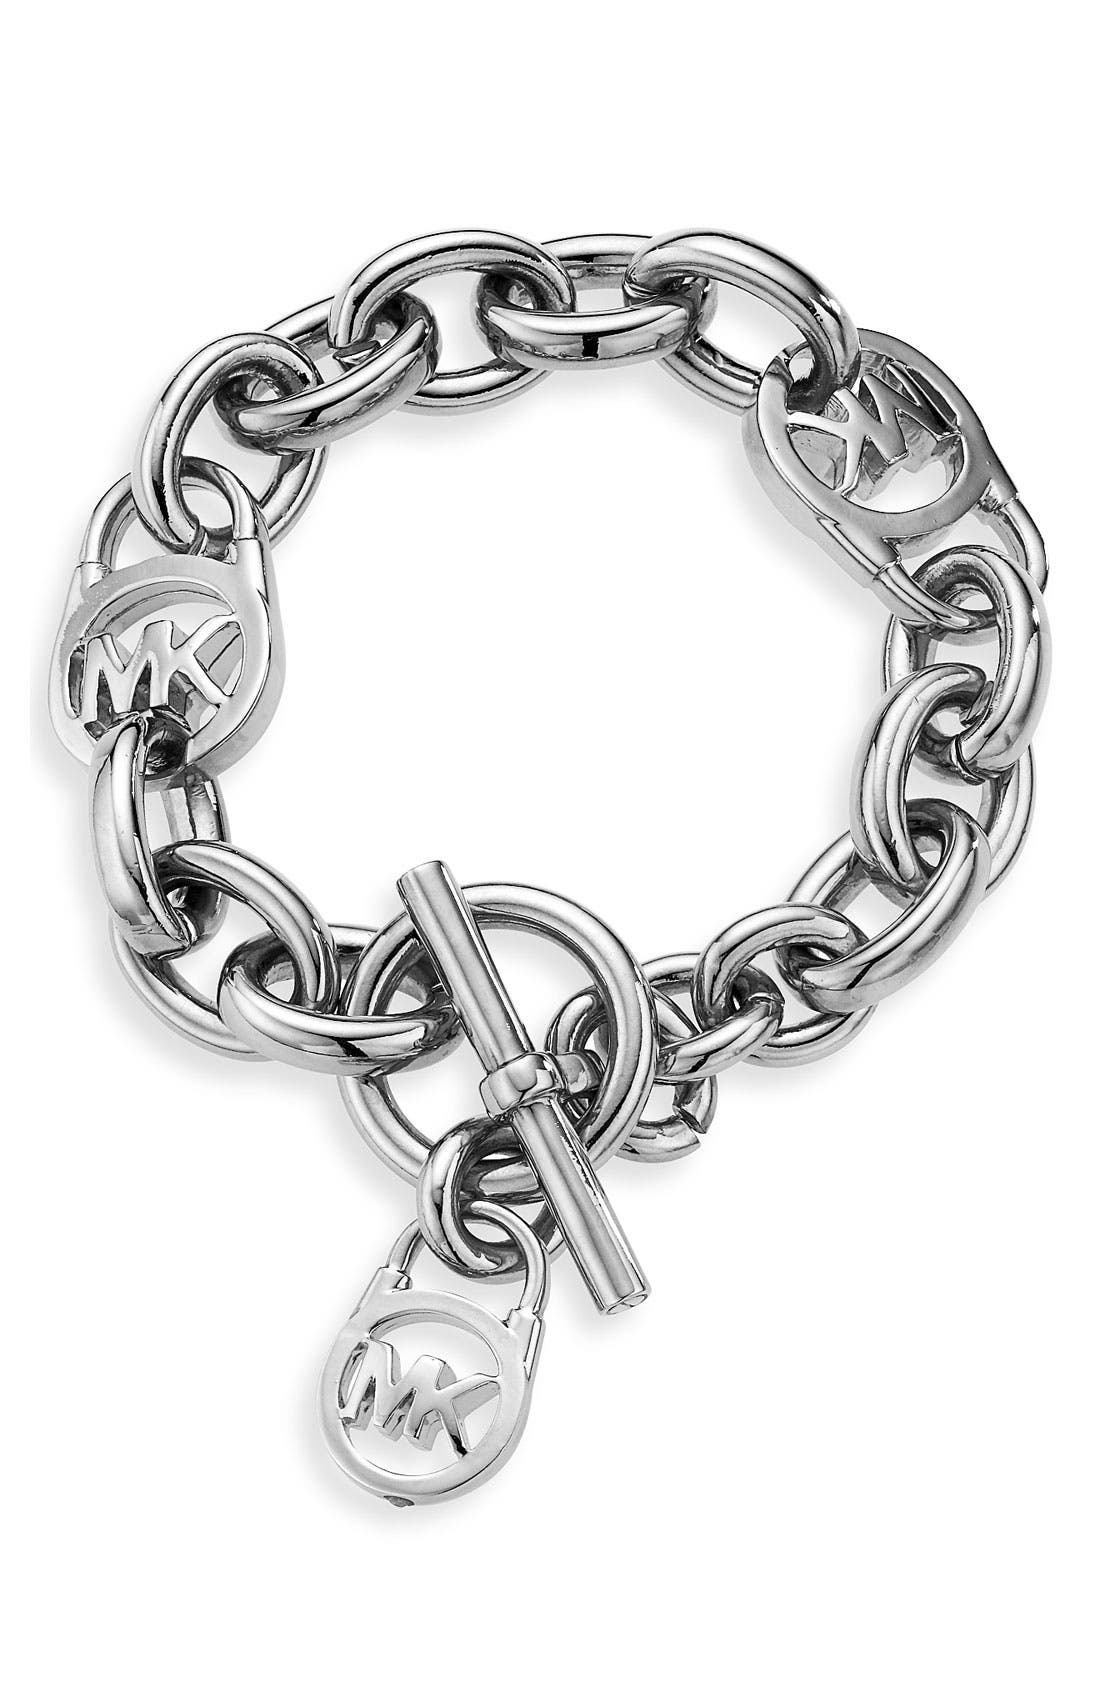 Main Image - Michael Kors Logo Toggle Bracelet